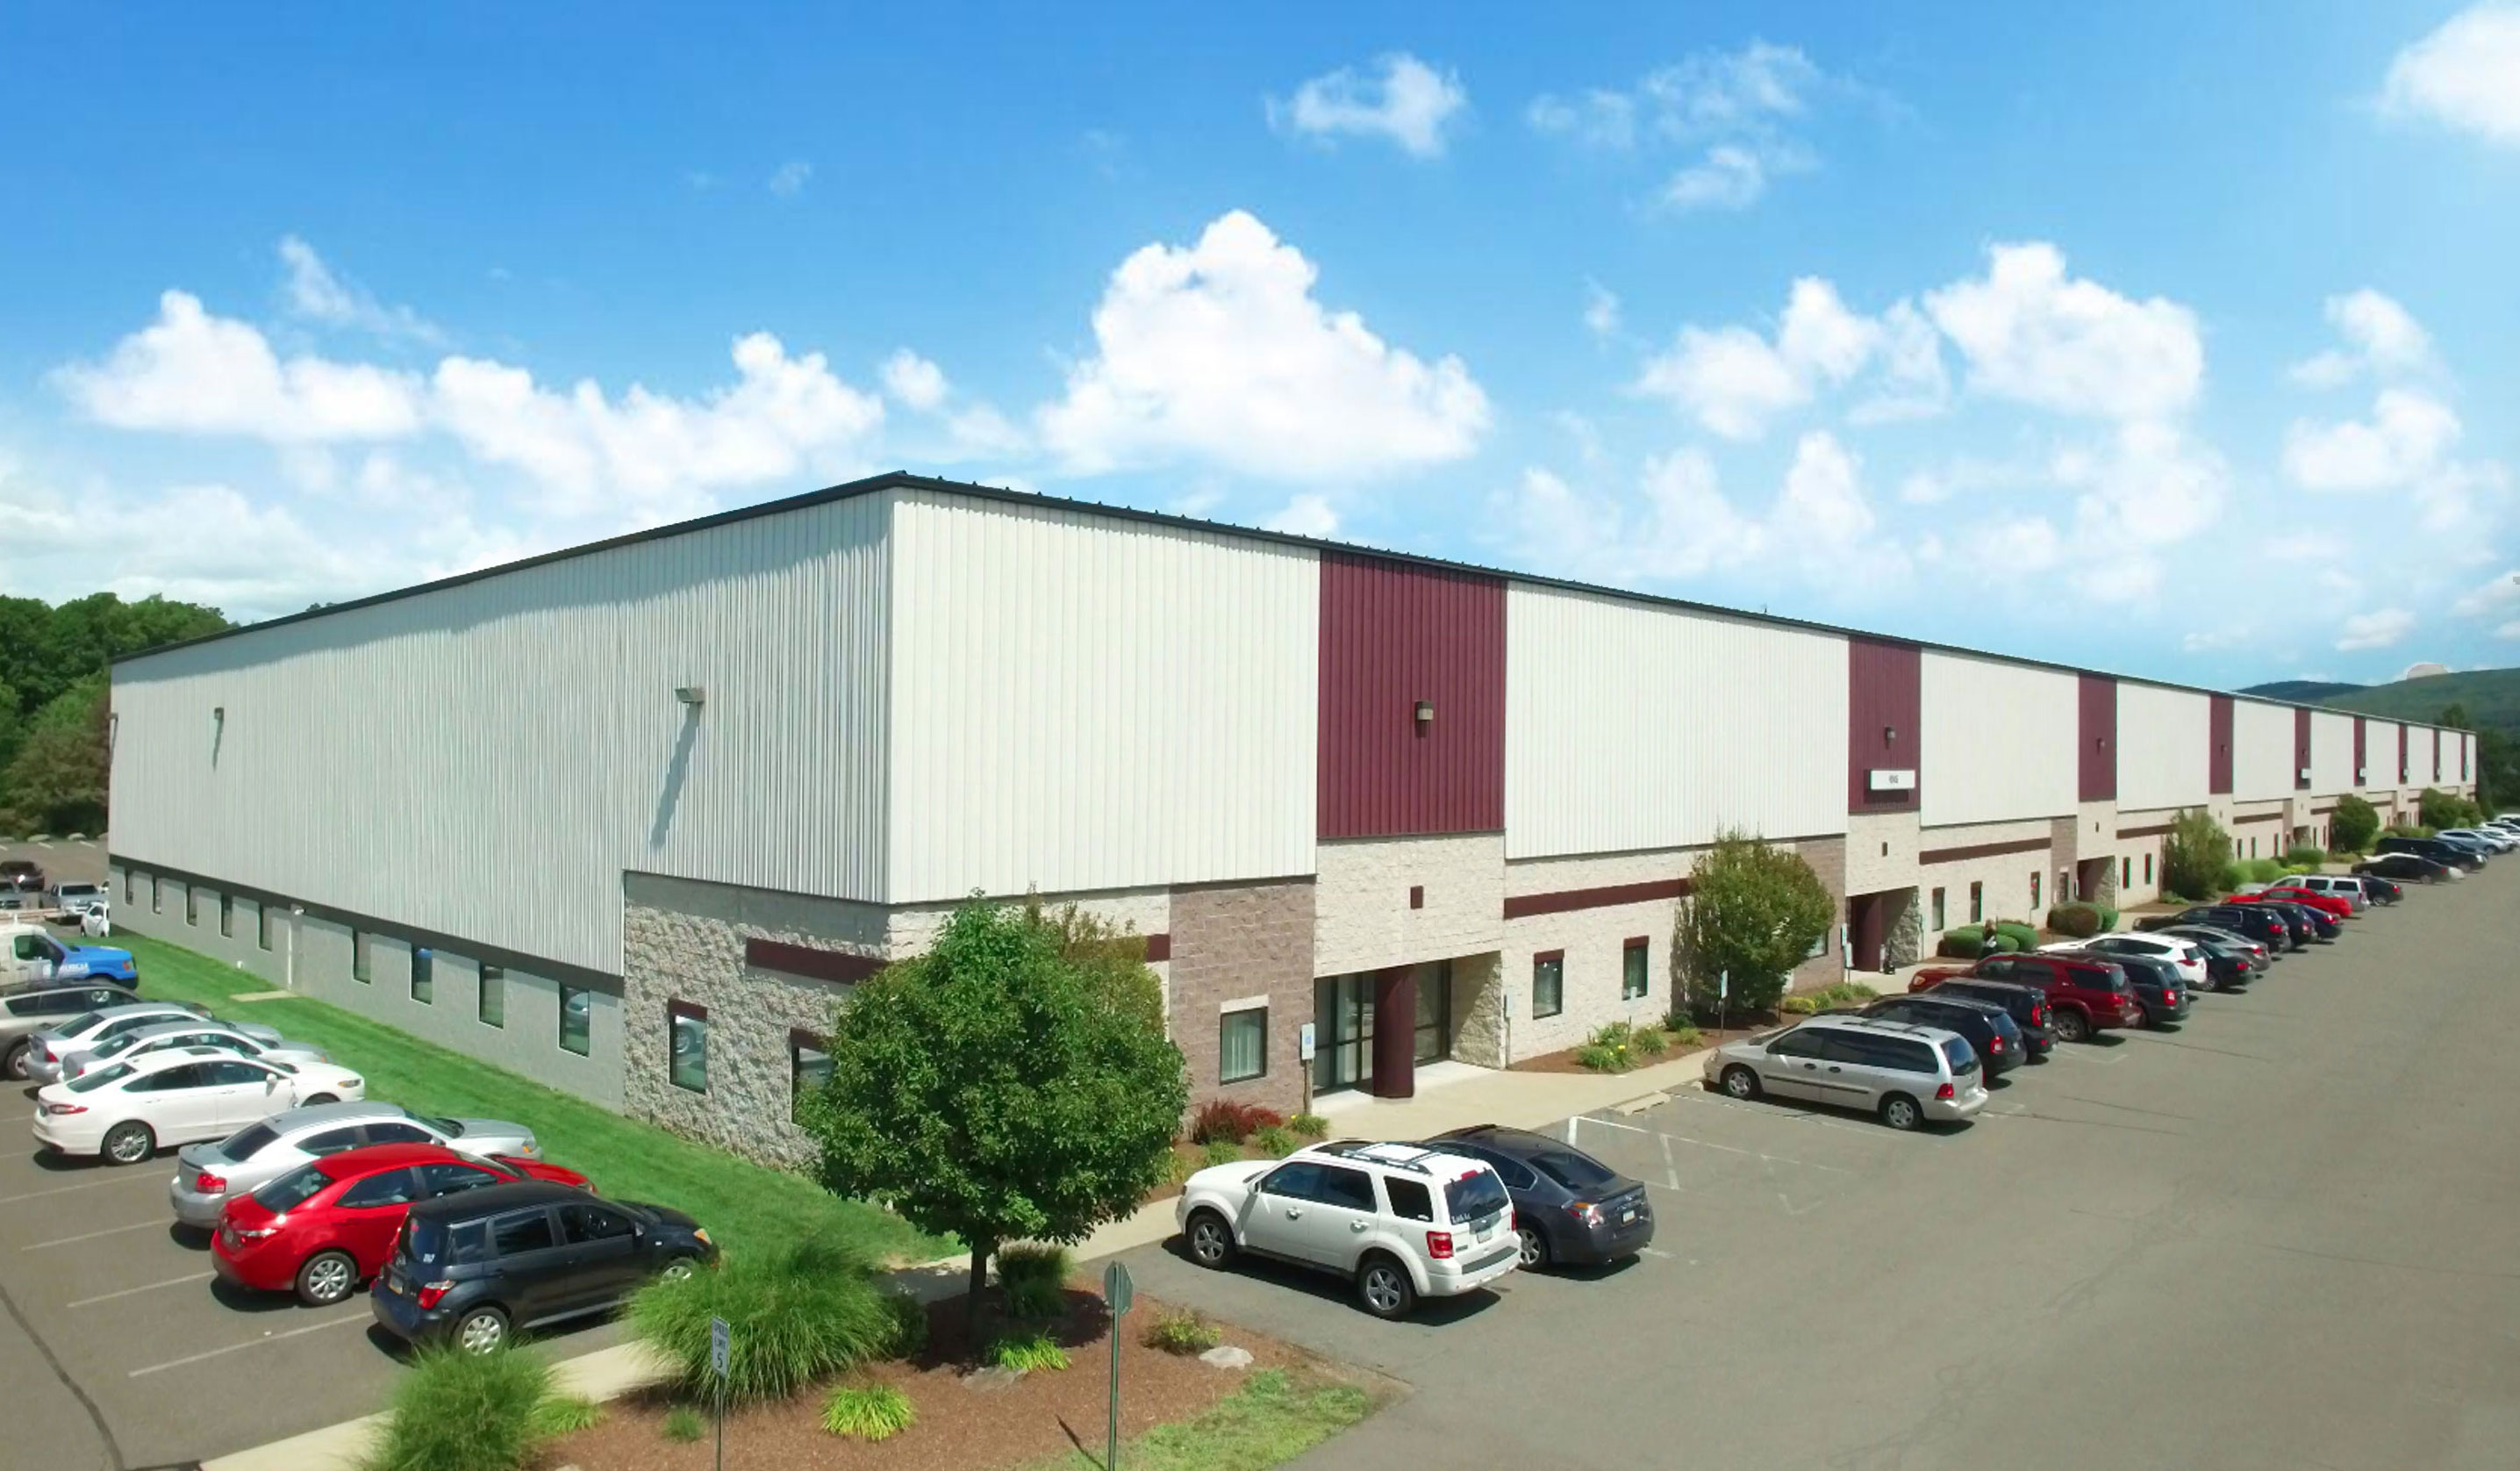 Mericle Clarks Service Group Facility